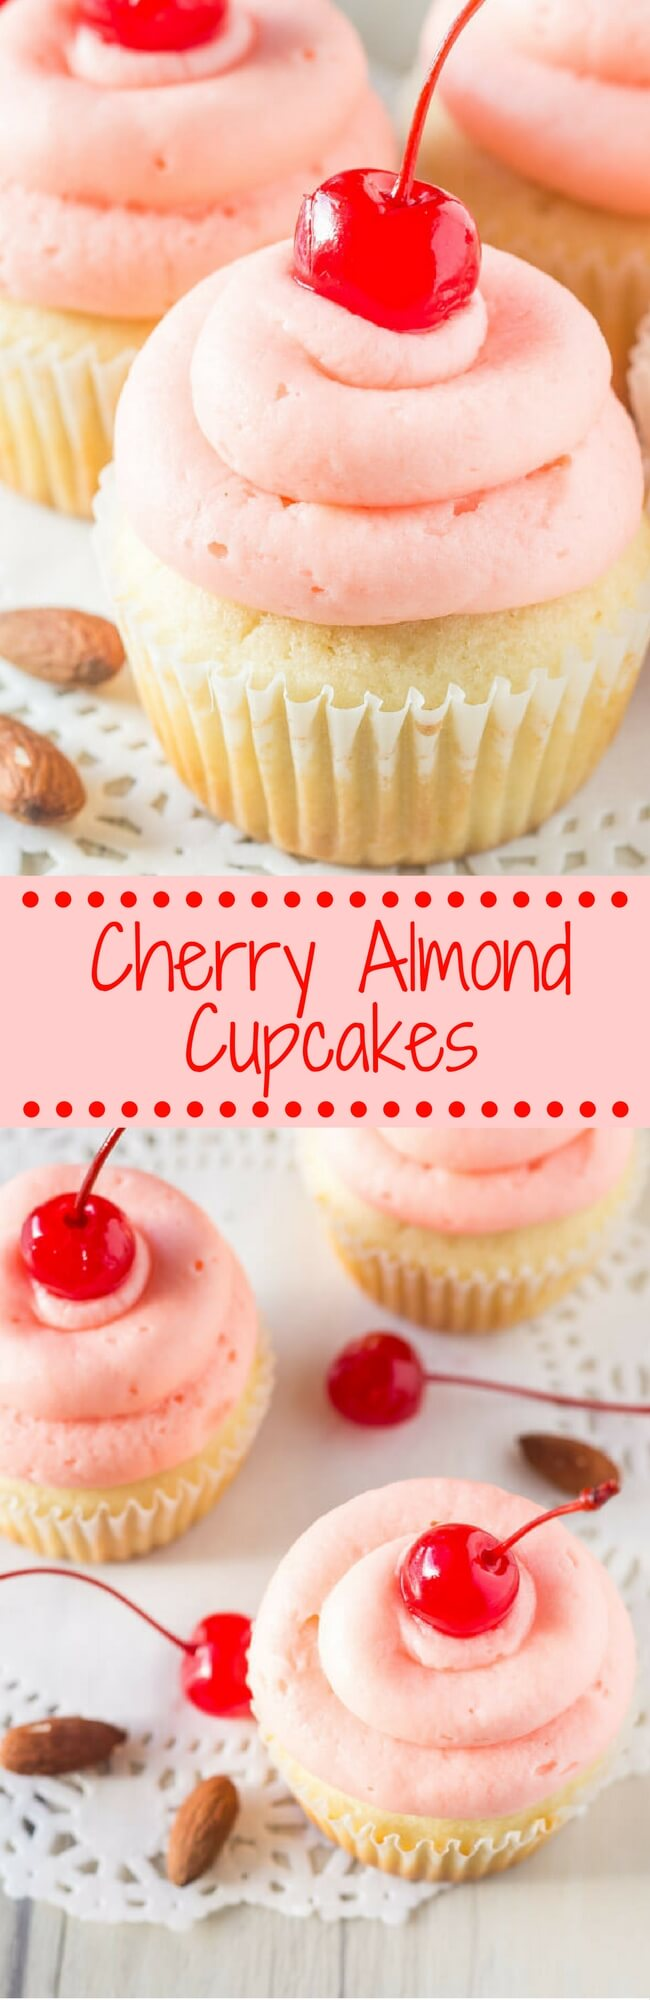 Cherry Almond Cupcakes Start With Fluffy Moist Almond Cupcakes Then Theyre Topped